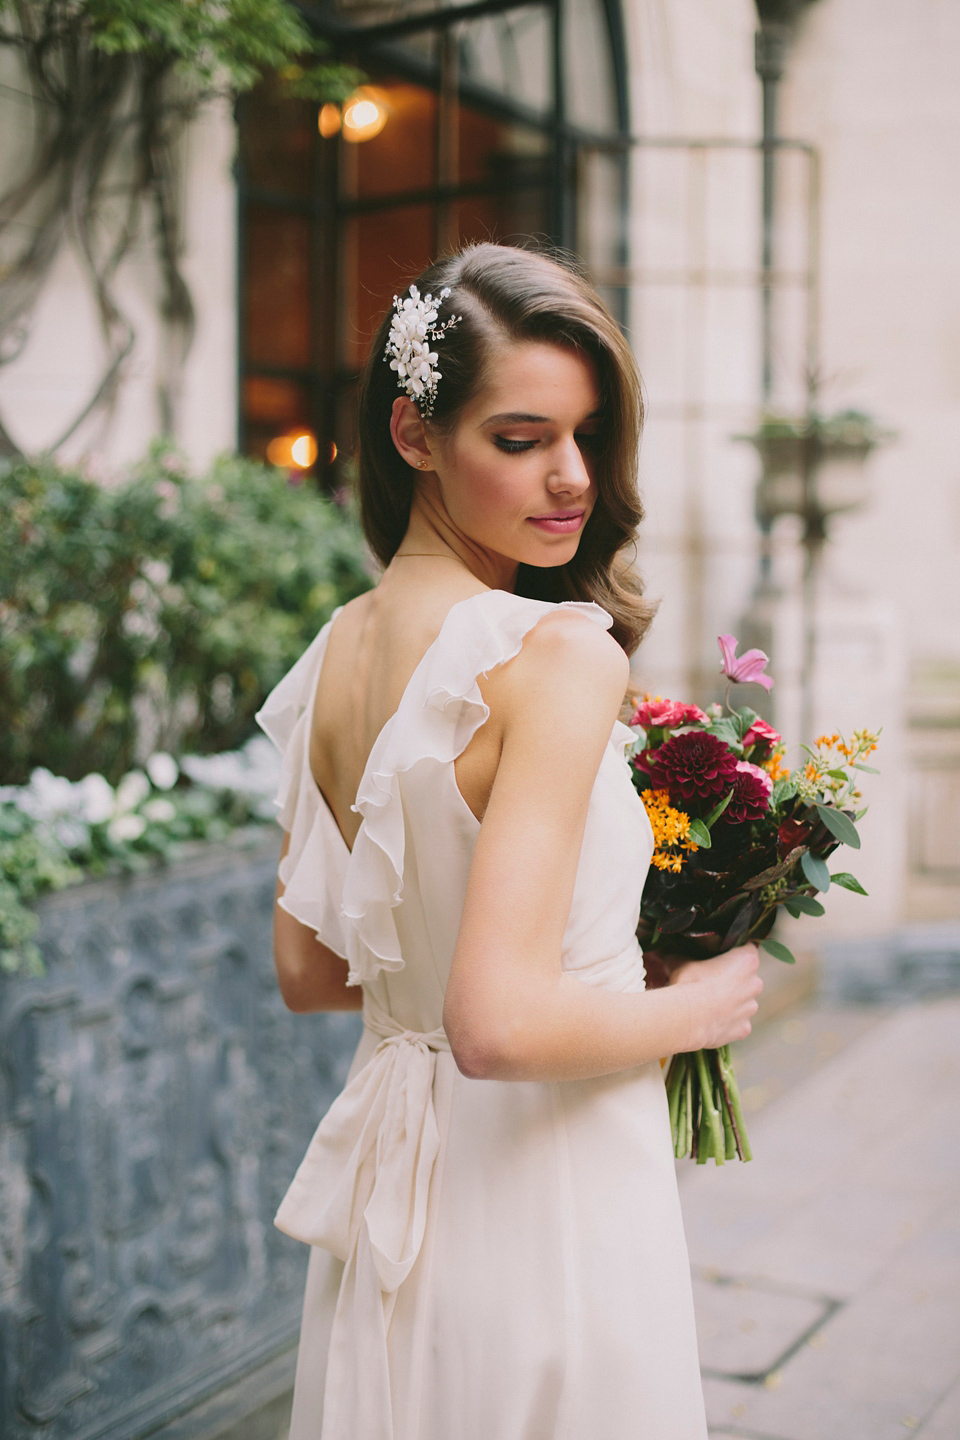 Wildflowers in the City – A Colourful and Elegant Bridal Inspiration Shoot